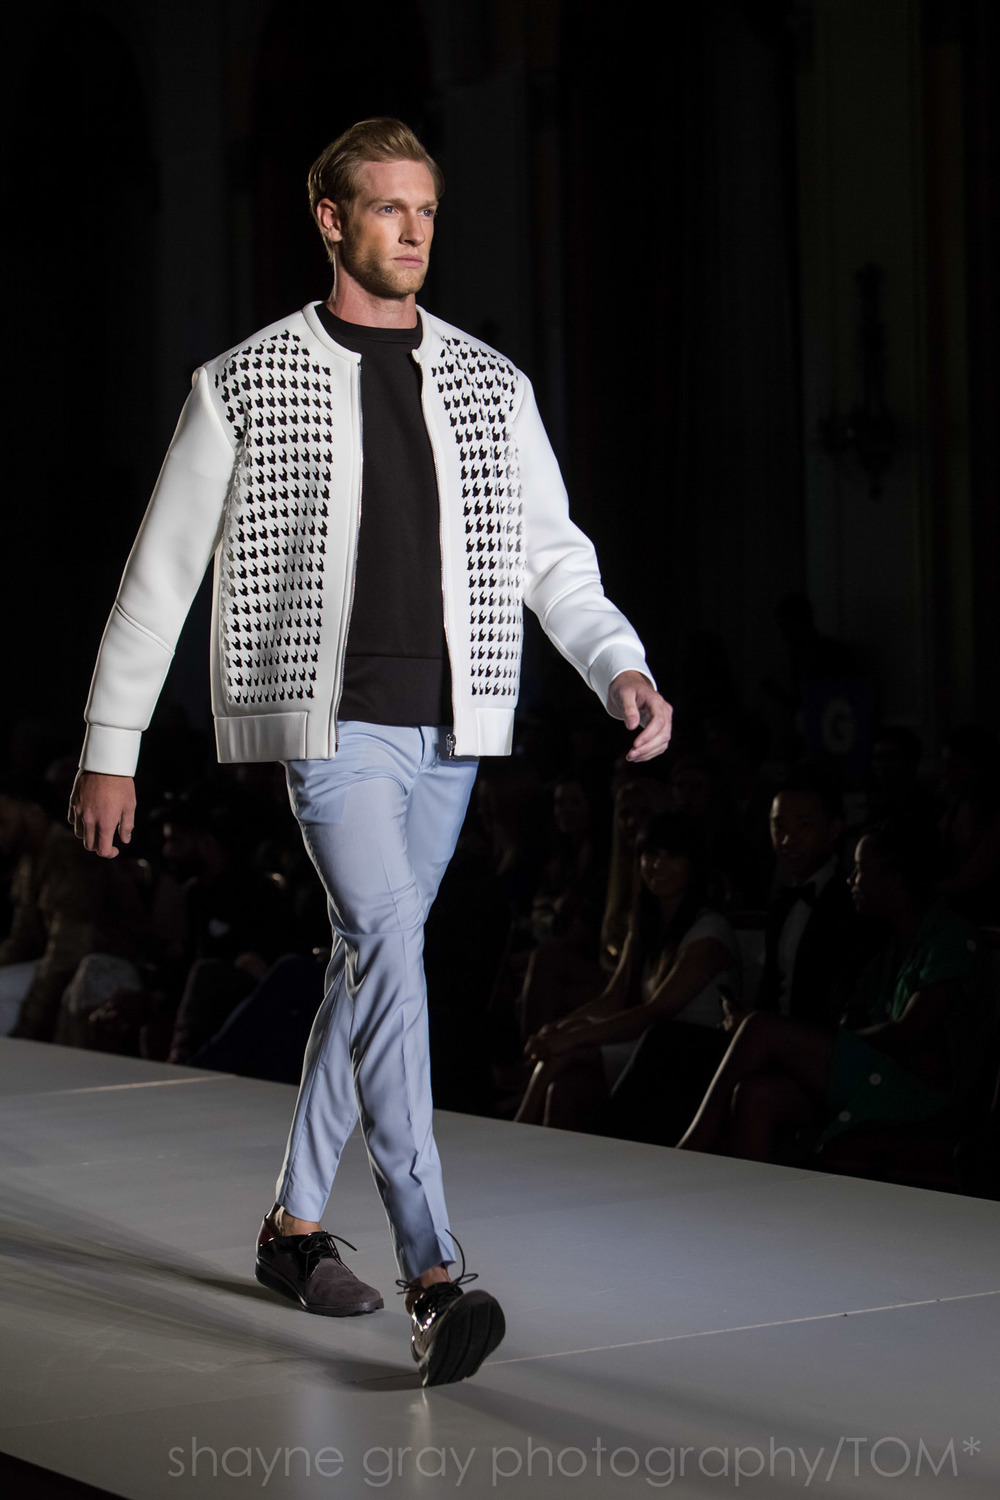 Shayne-Gray-Toronto-men's-fashion_week-TOM-noel-crisostomo-8483.jpg